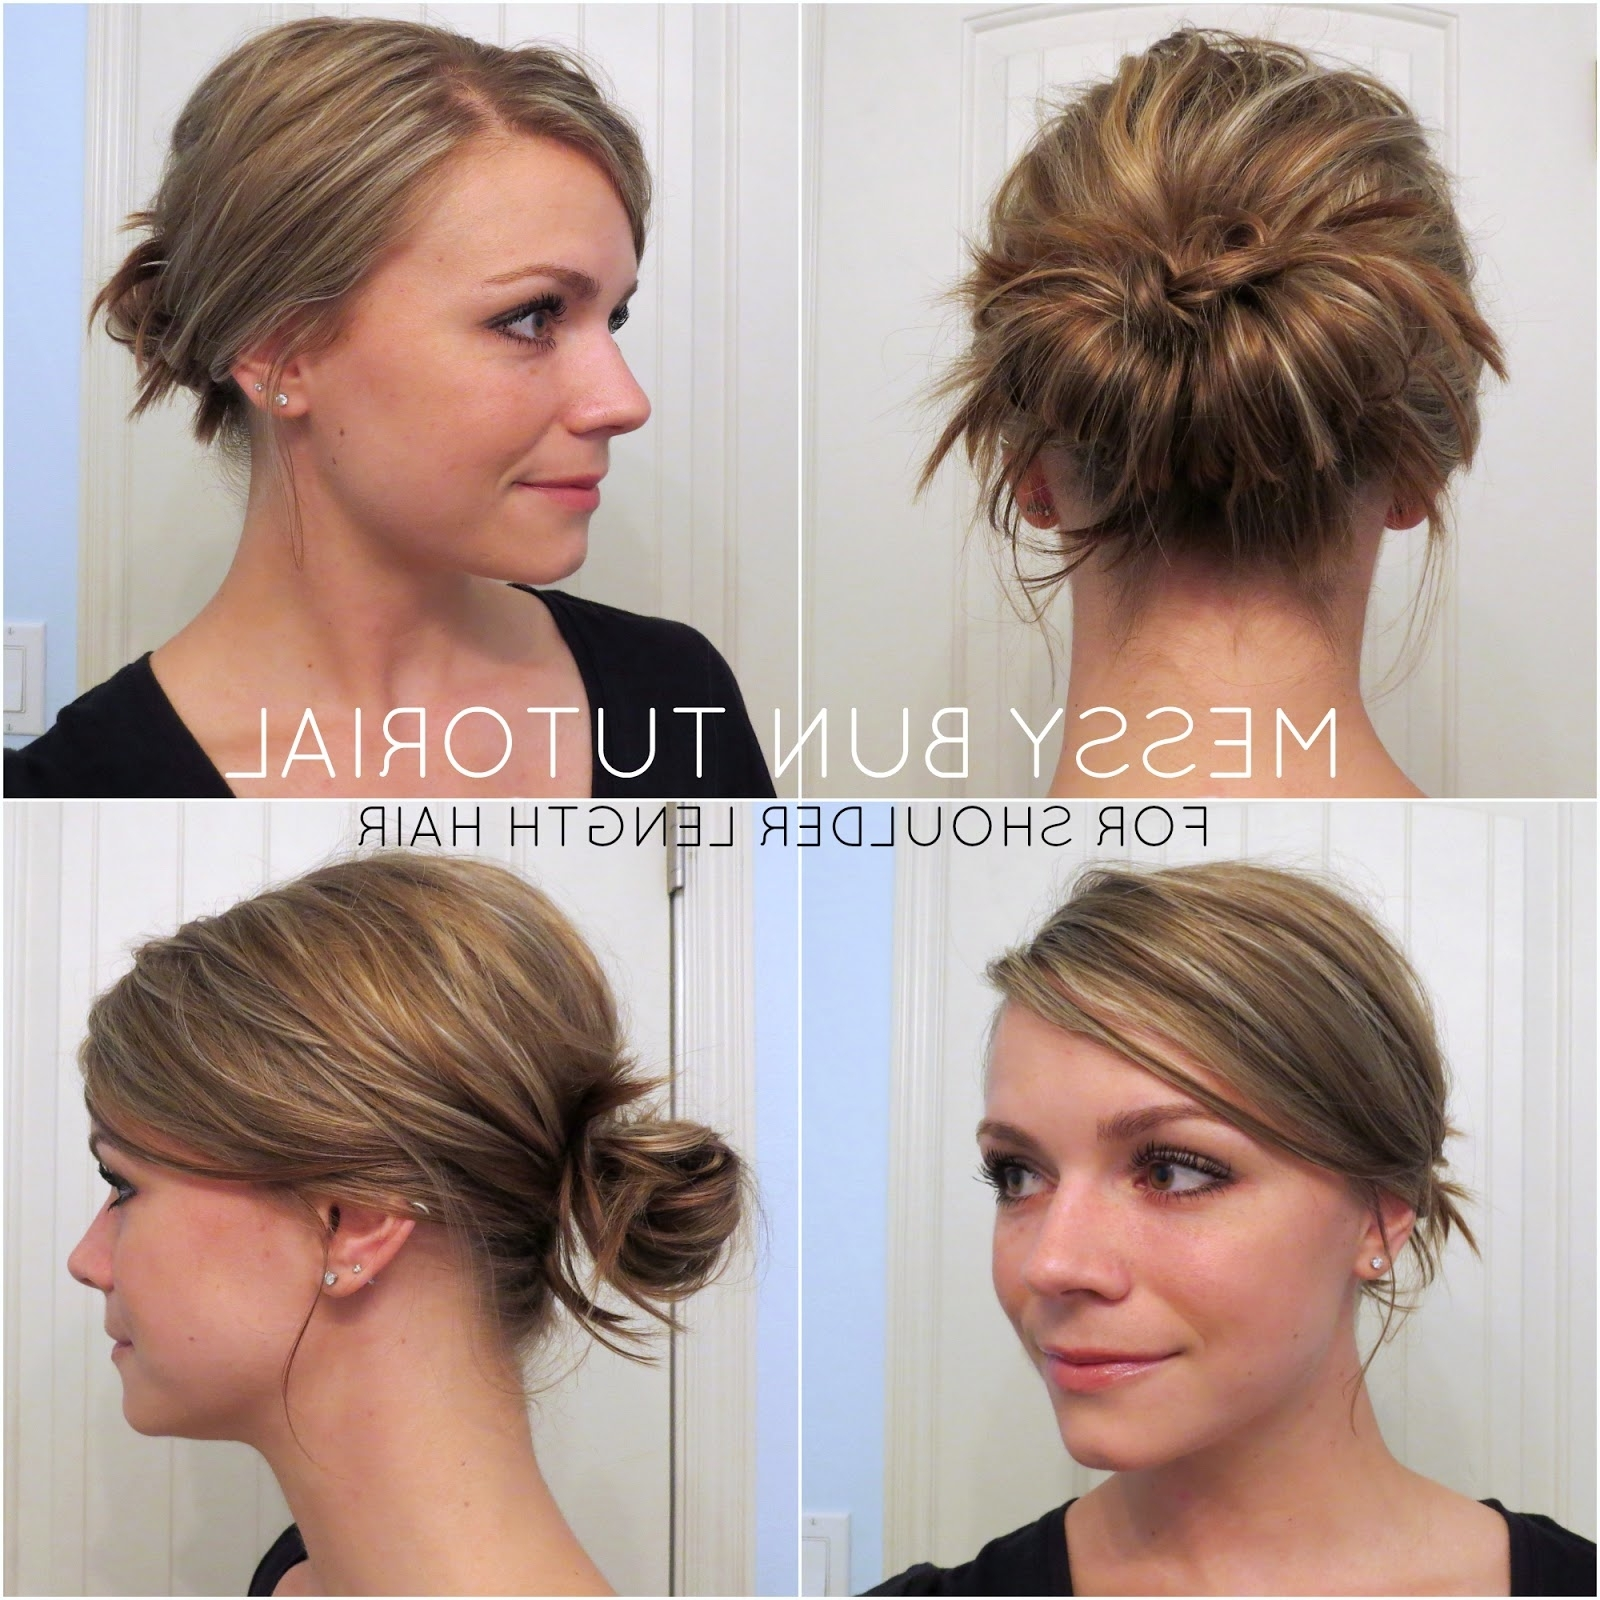 Bye Bye Beehive │ A Hairstyle Blog: Messy Bun For Shoulder Length Hair Within Messy Updos For Medium Length Hair (View 12 of 15)